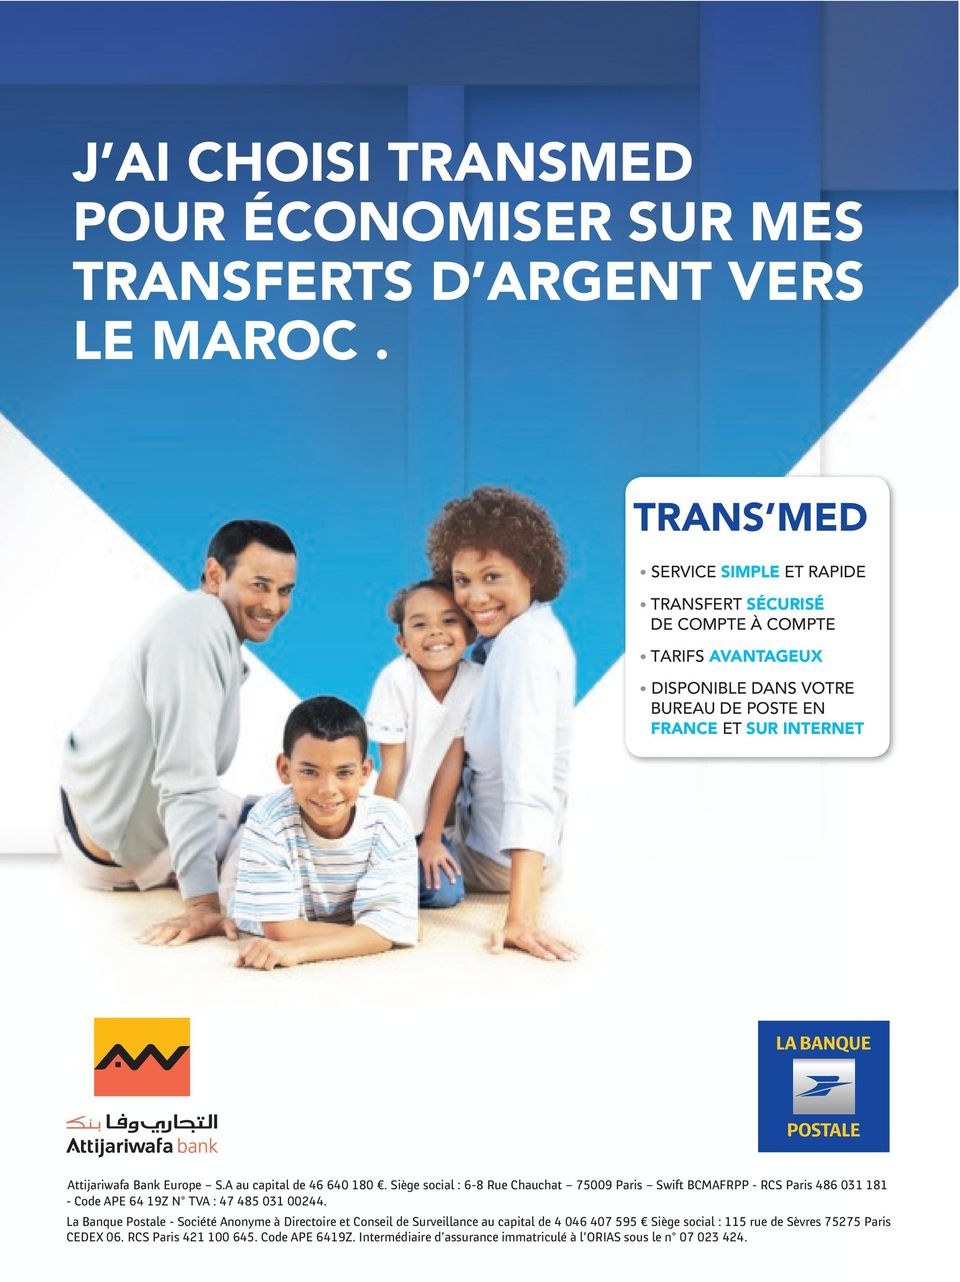 Bank Europe S.A au capital de 46 640 180. Siège social :6-8 Rue Chauchat 75009 Paris Swift BCMAFRPP -RCS Paris 486 031 181 -Code APE 64 19Z N TVA:47485 031 00244.